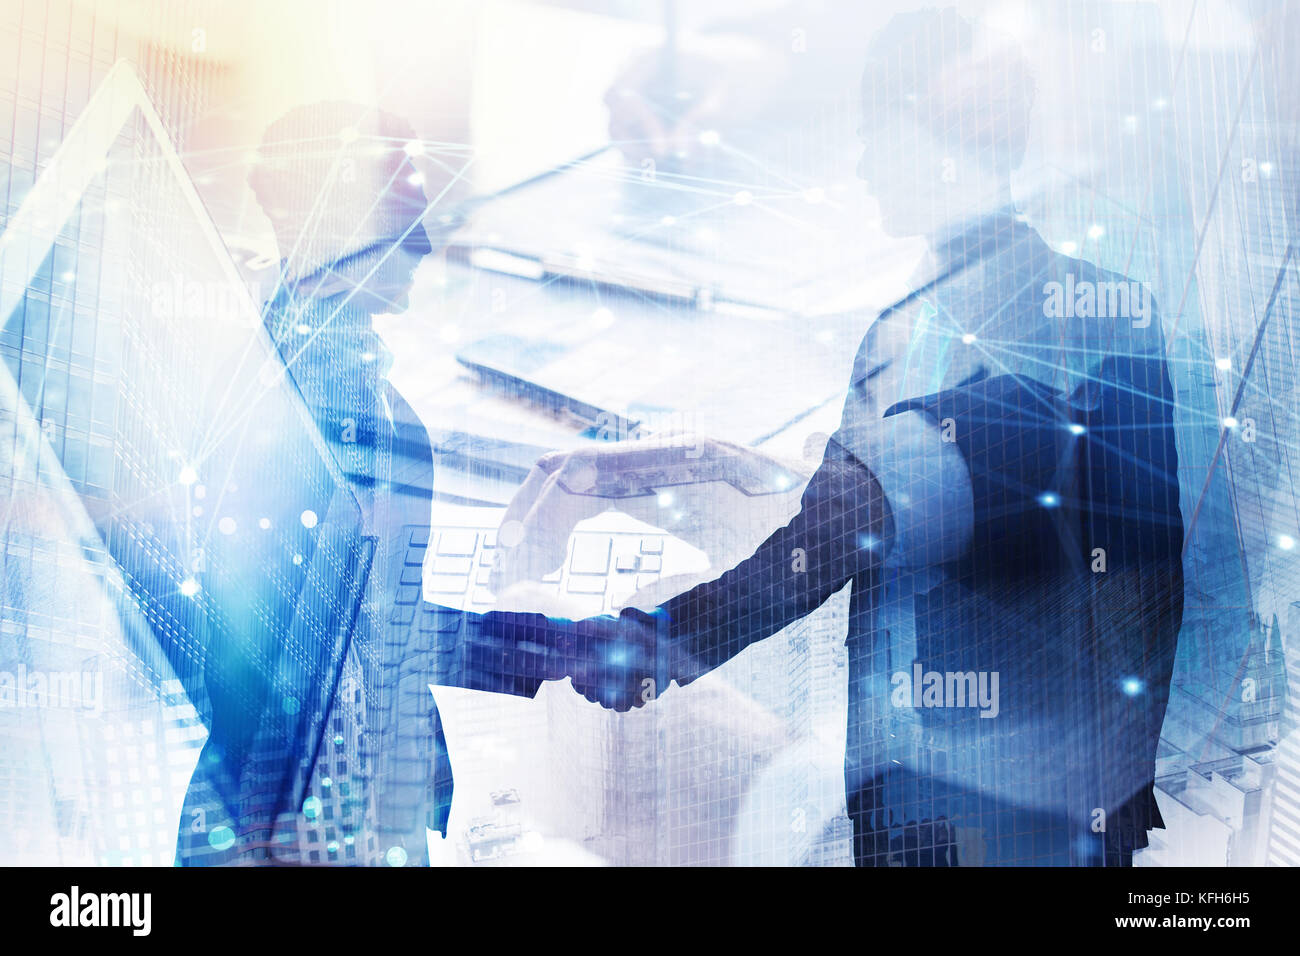 Abstract business handshake. Concept of partnership and teamwork. Double exposure - Stock Image